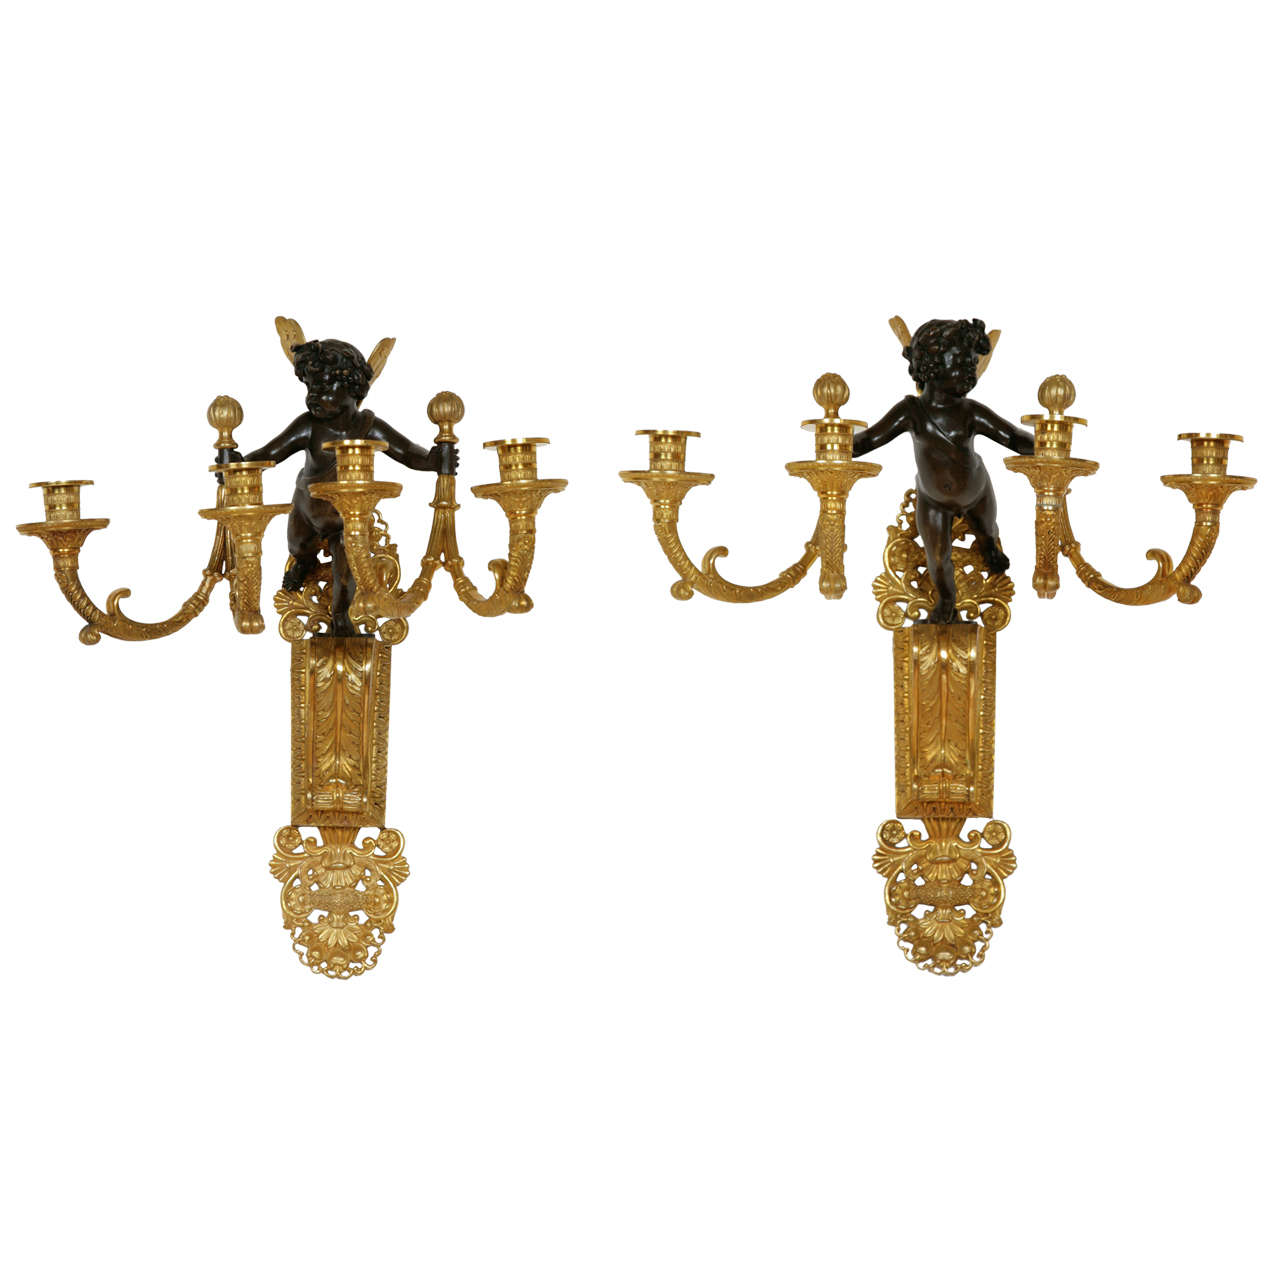 Pair of Restoration Period Gilt and Patinated Bronze Wall Lights